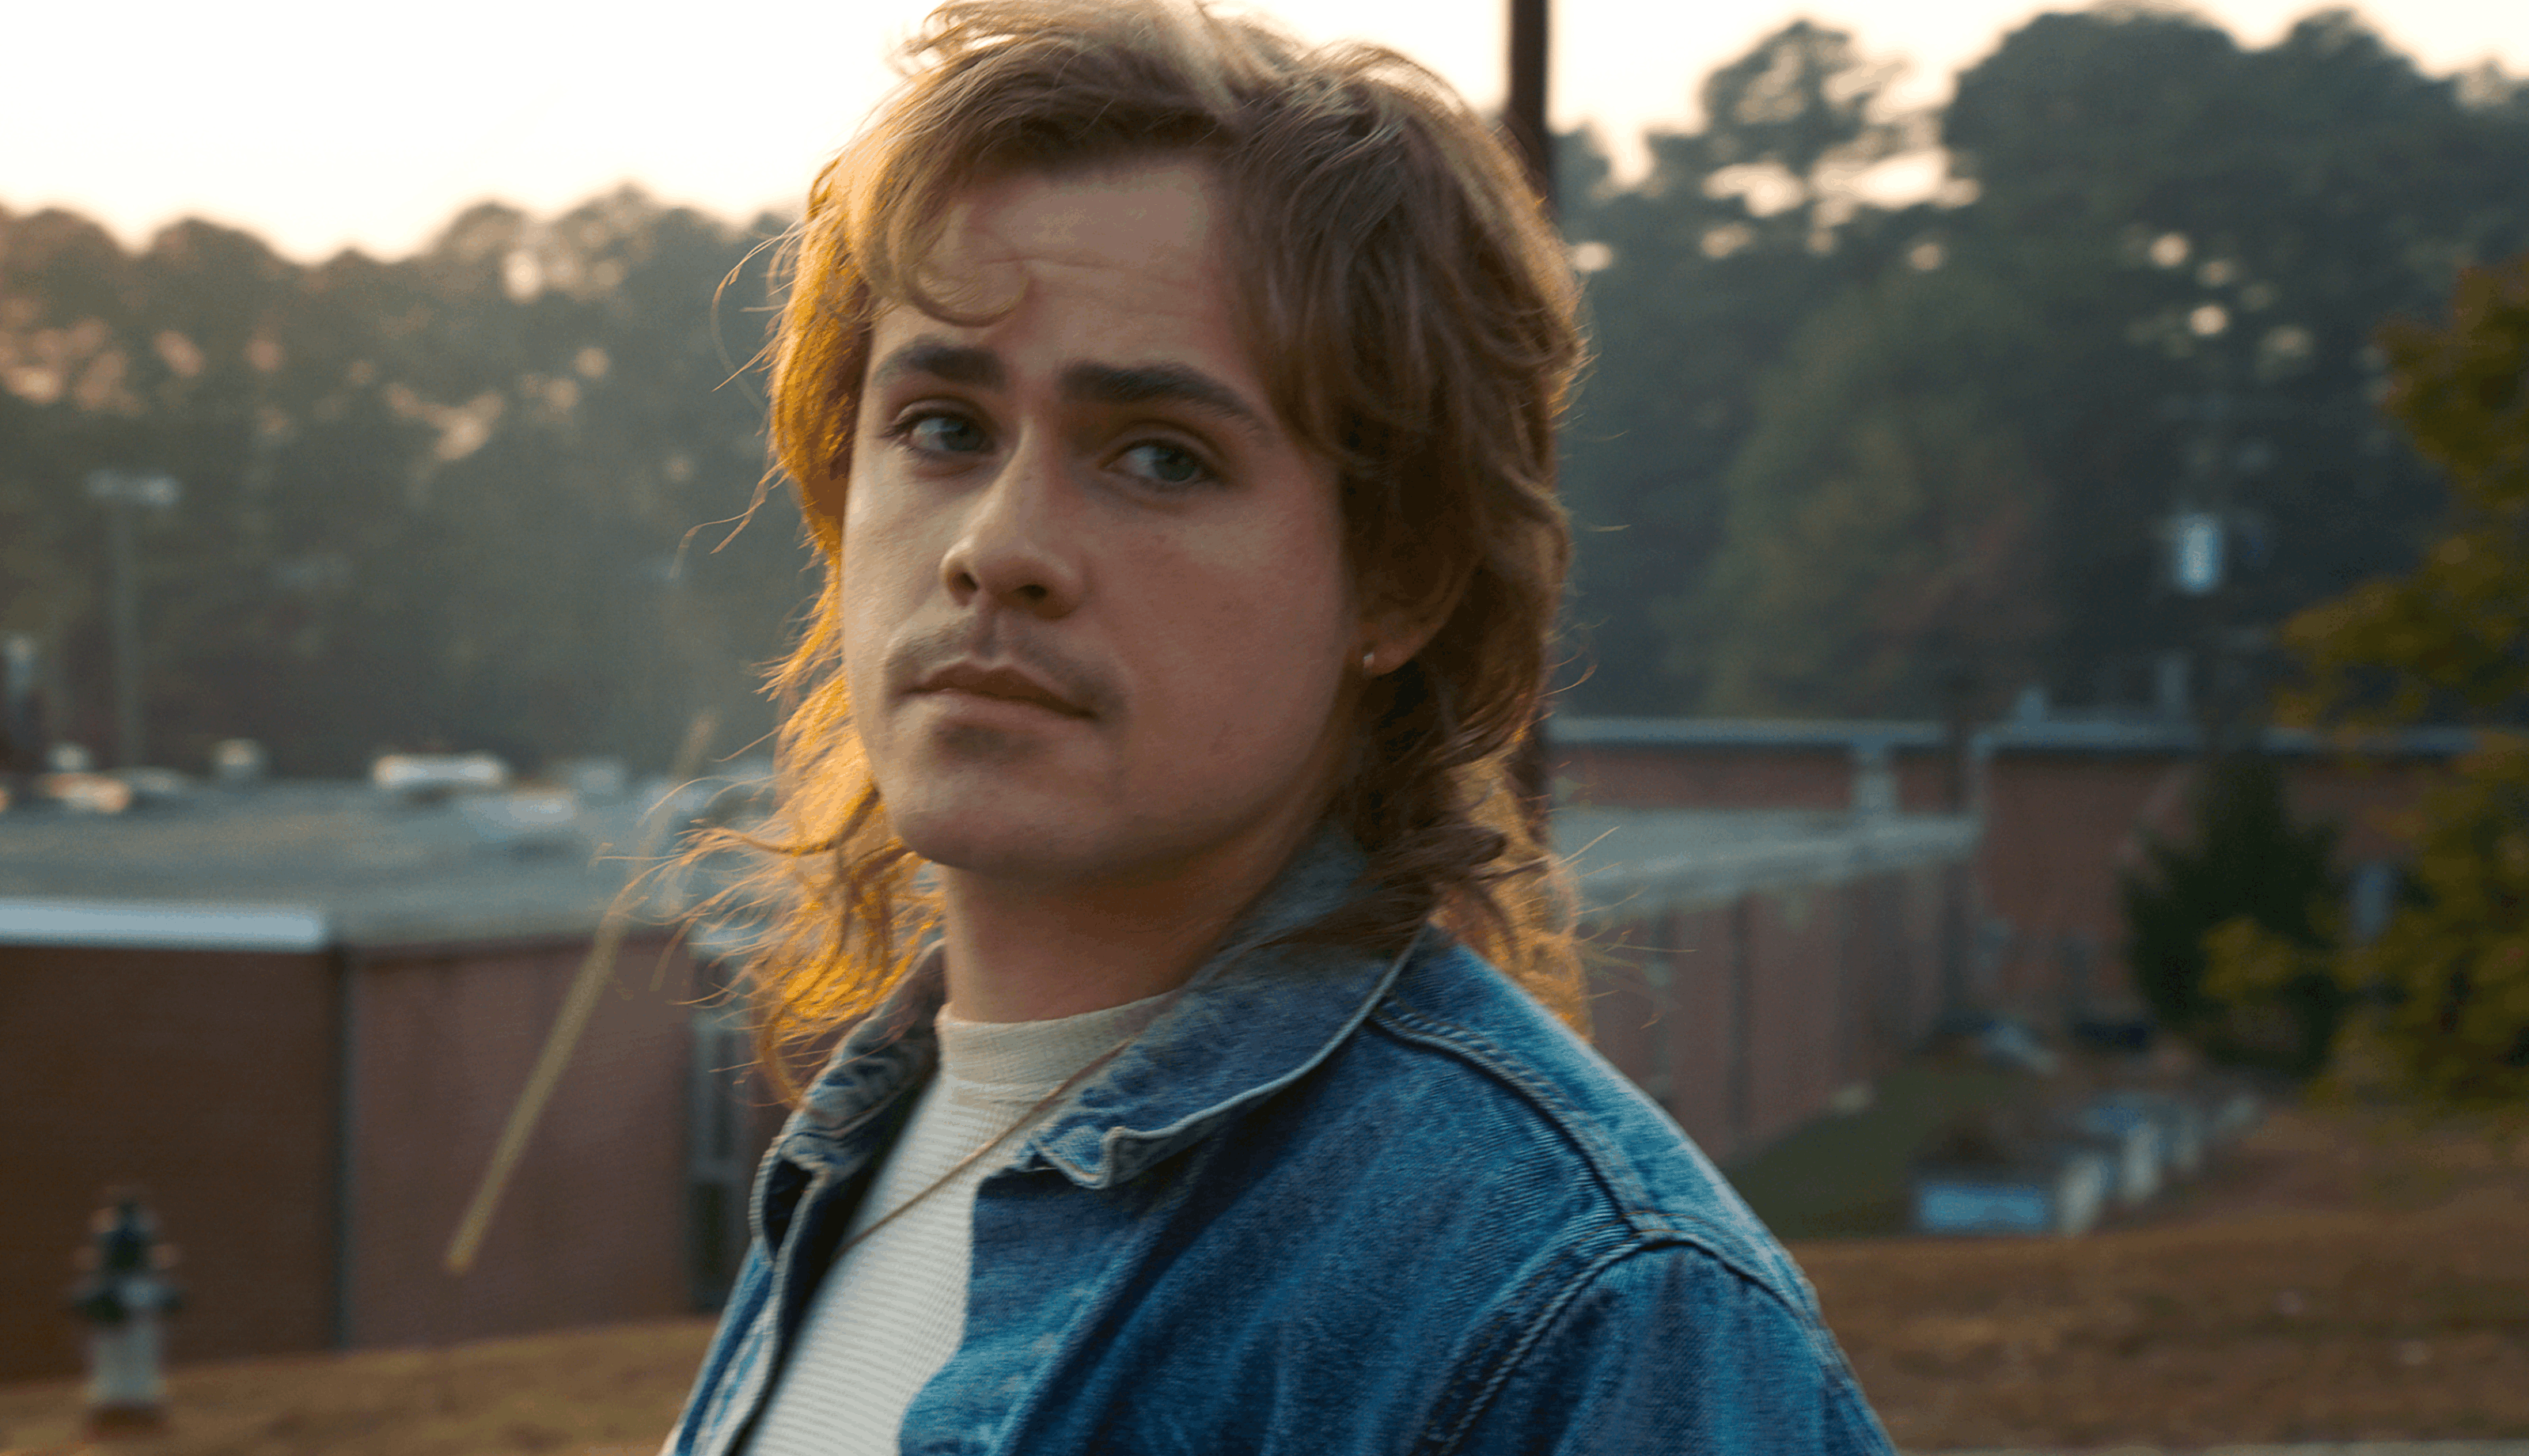 Billy Stranger Things Dacre Montgomery